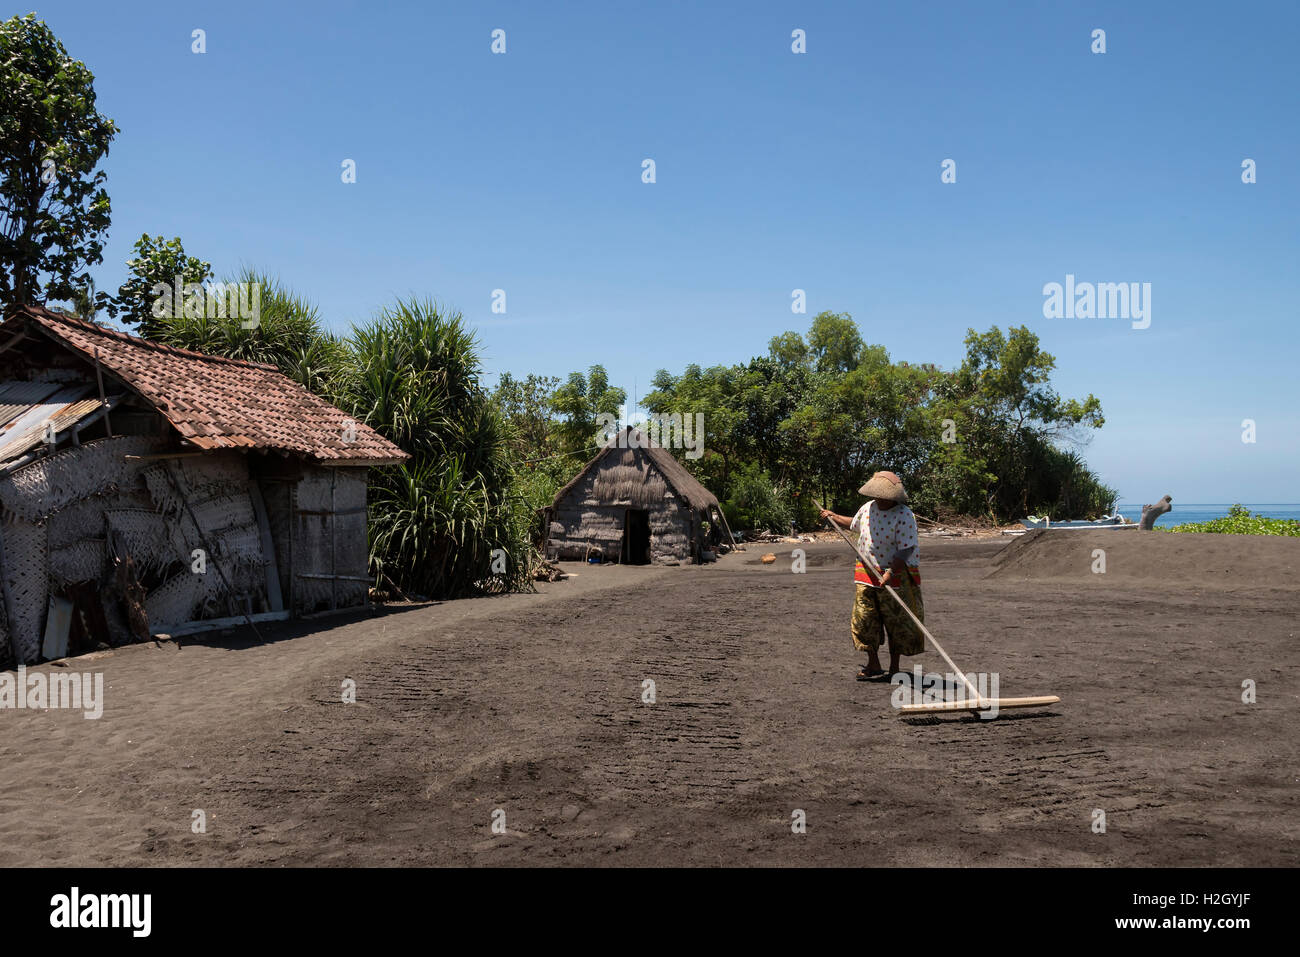 Salt farm in Bali. - Stock Image